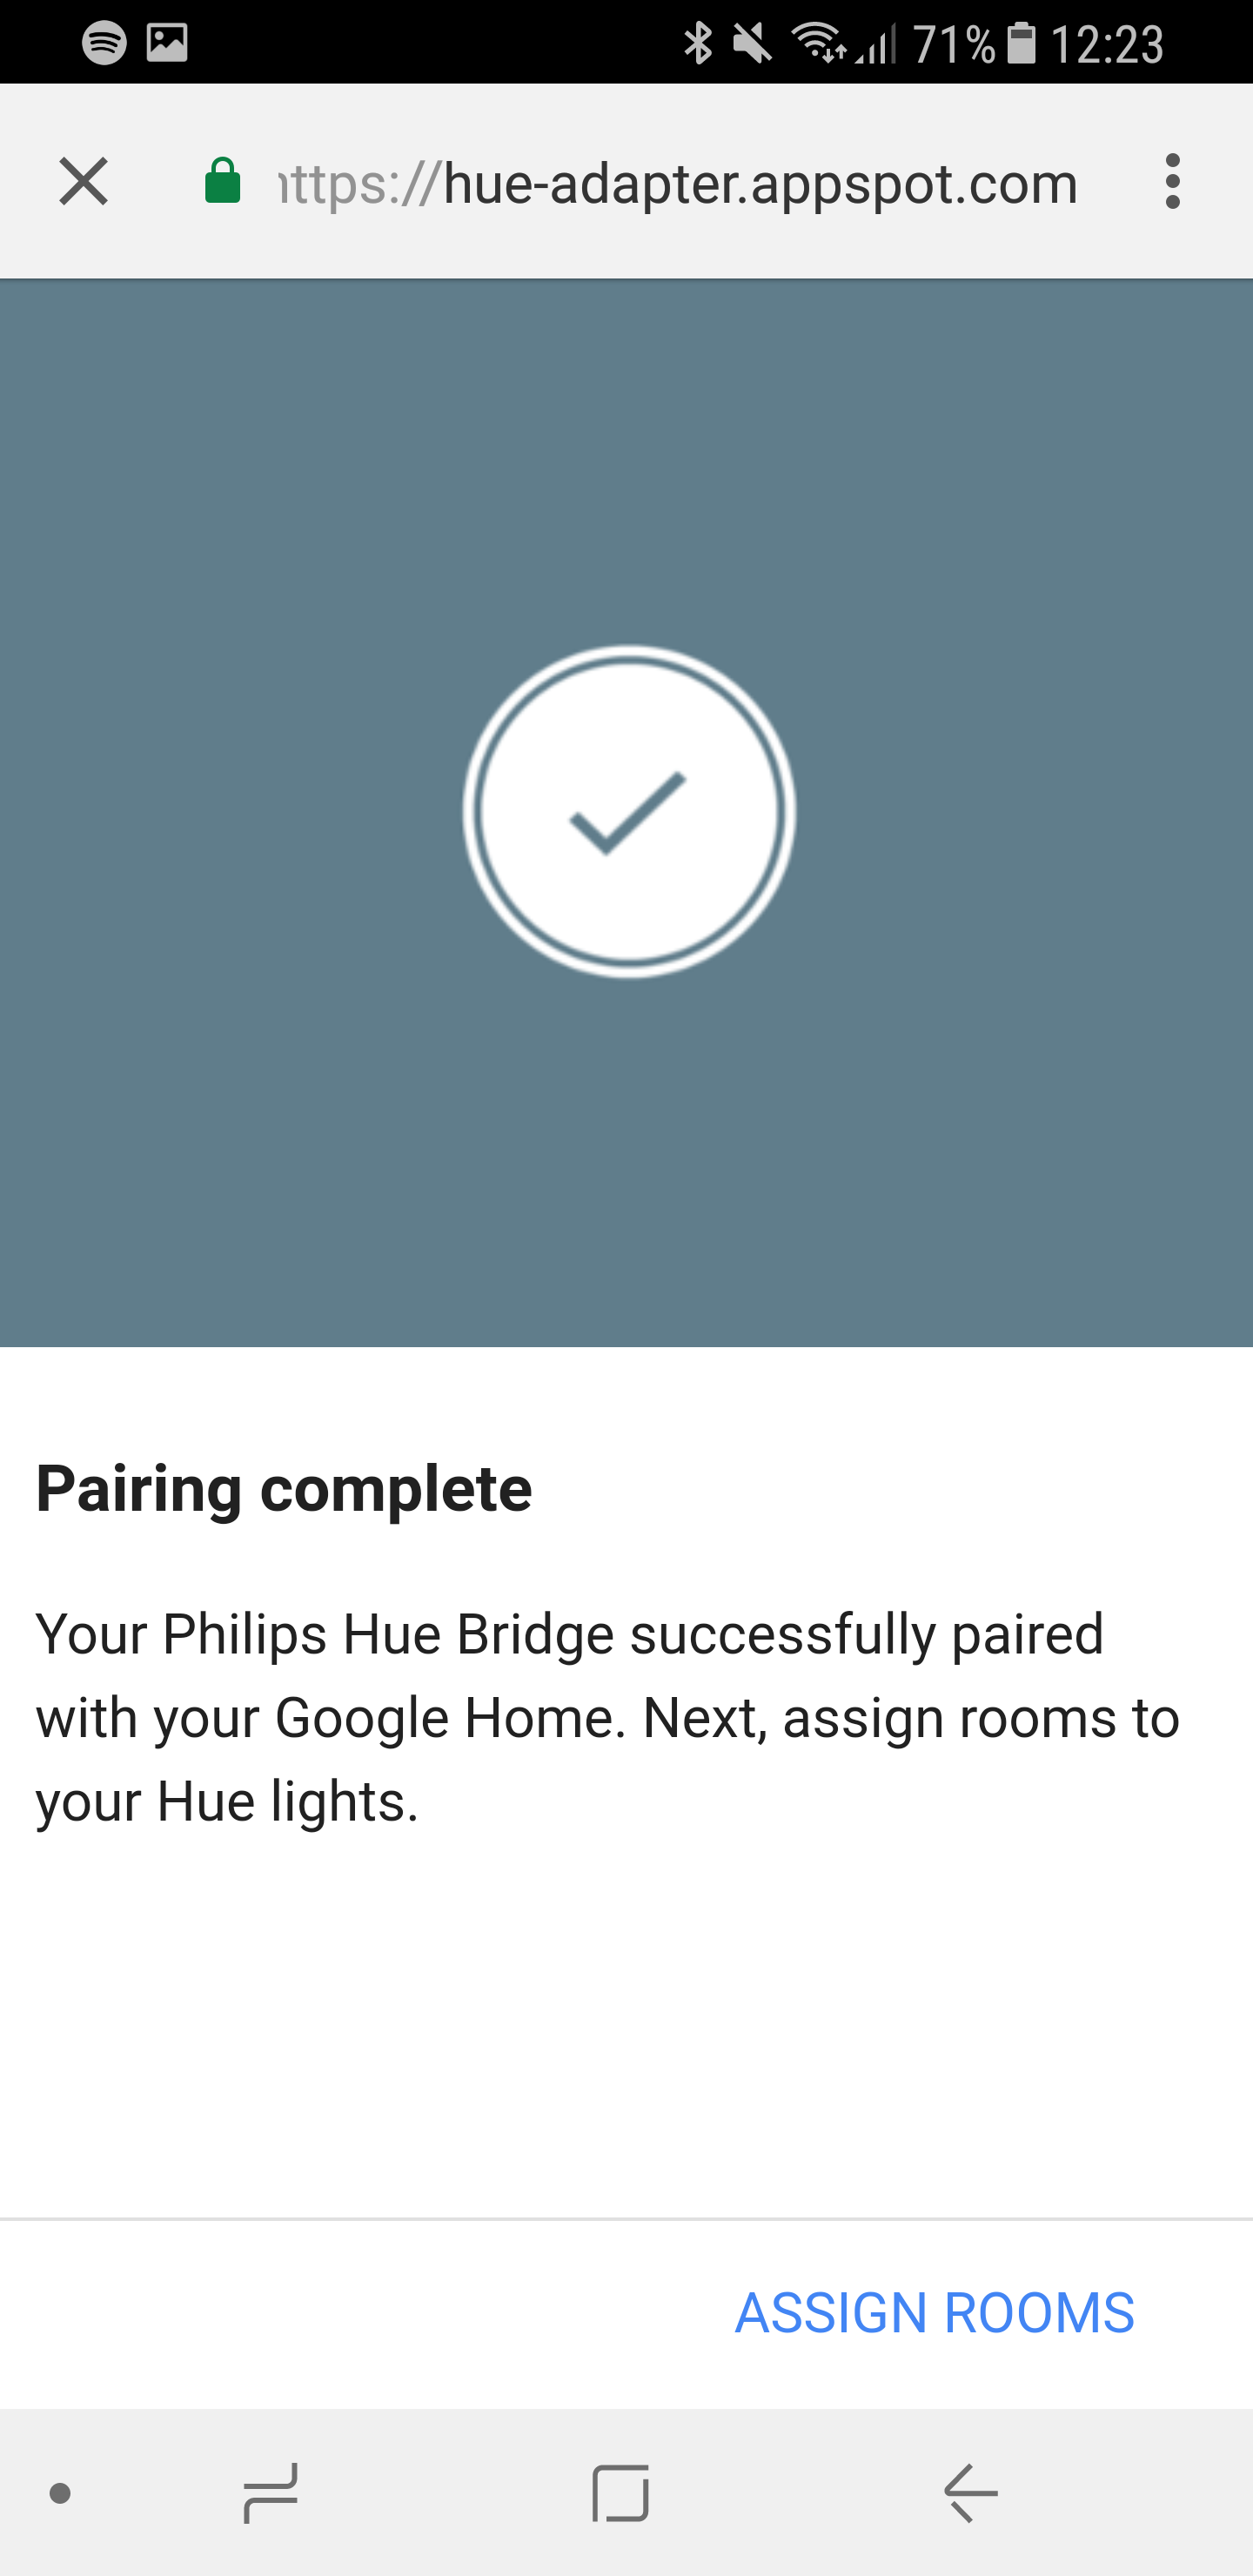 Google-Home-und-Philips-Hue-6